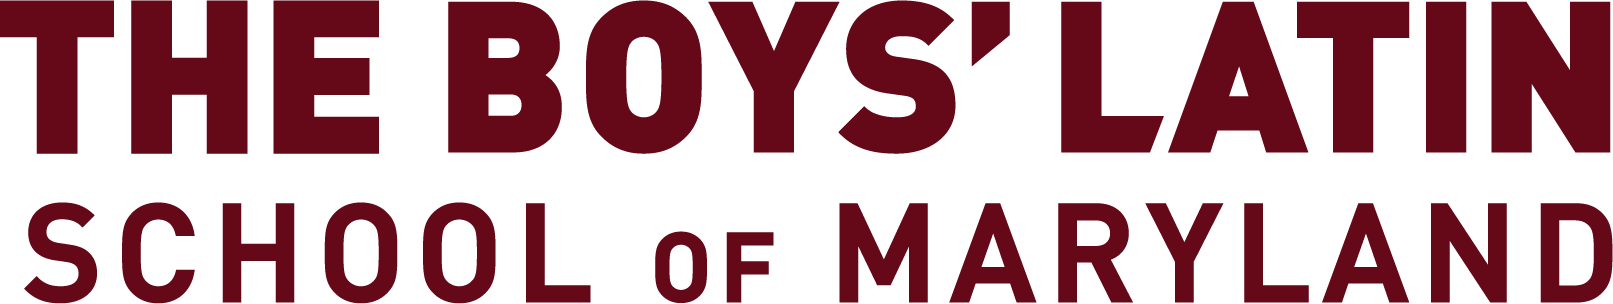 The Boys' Latin School of Maryland